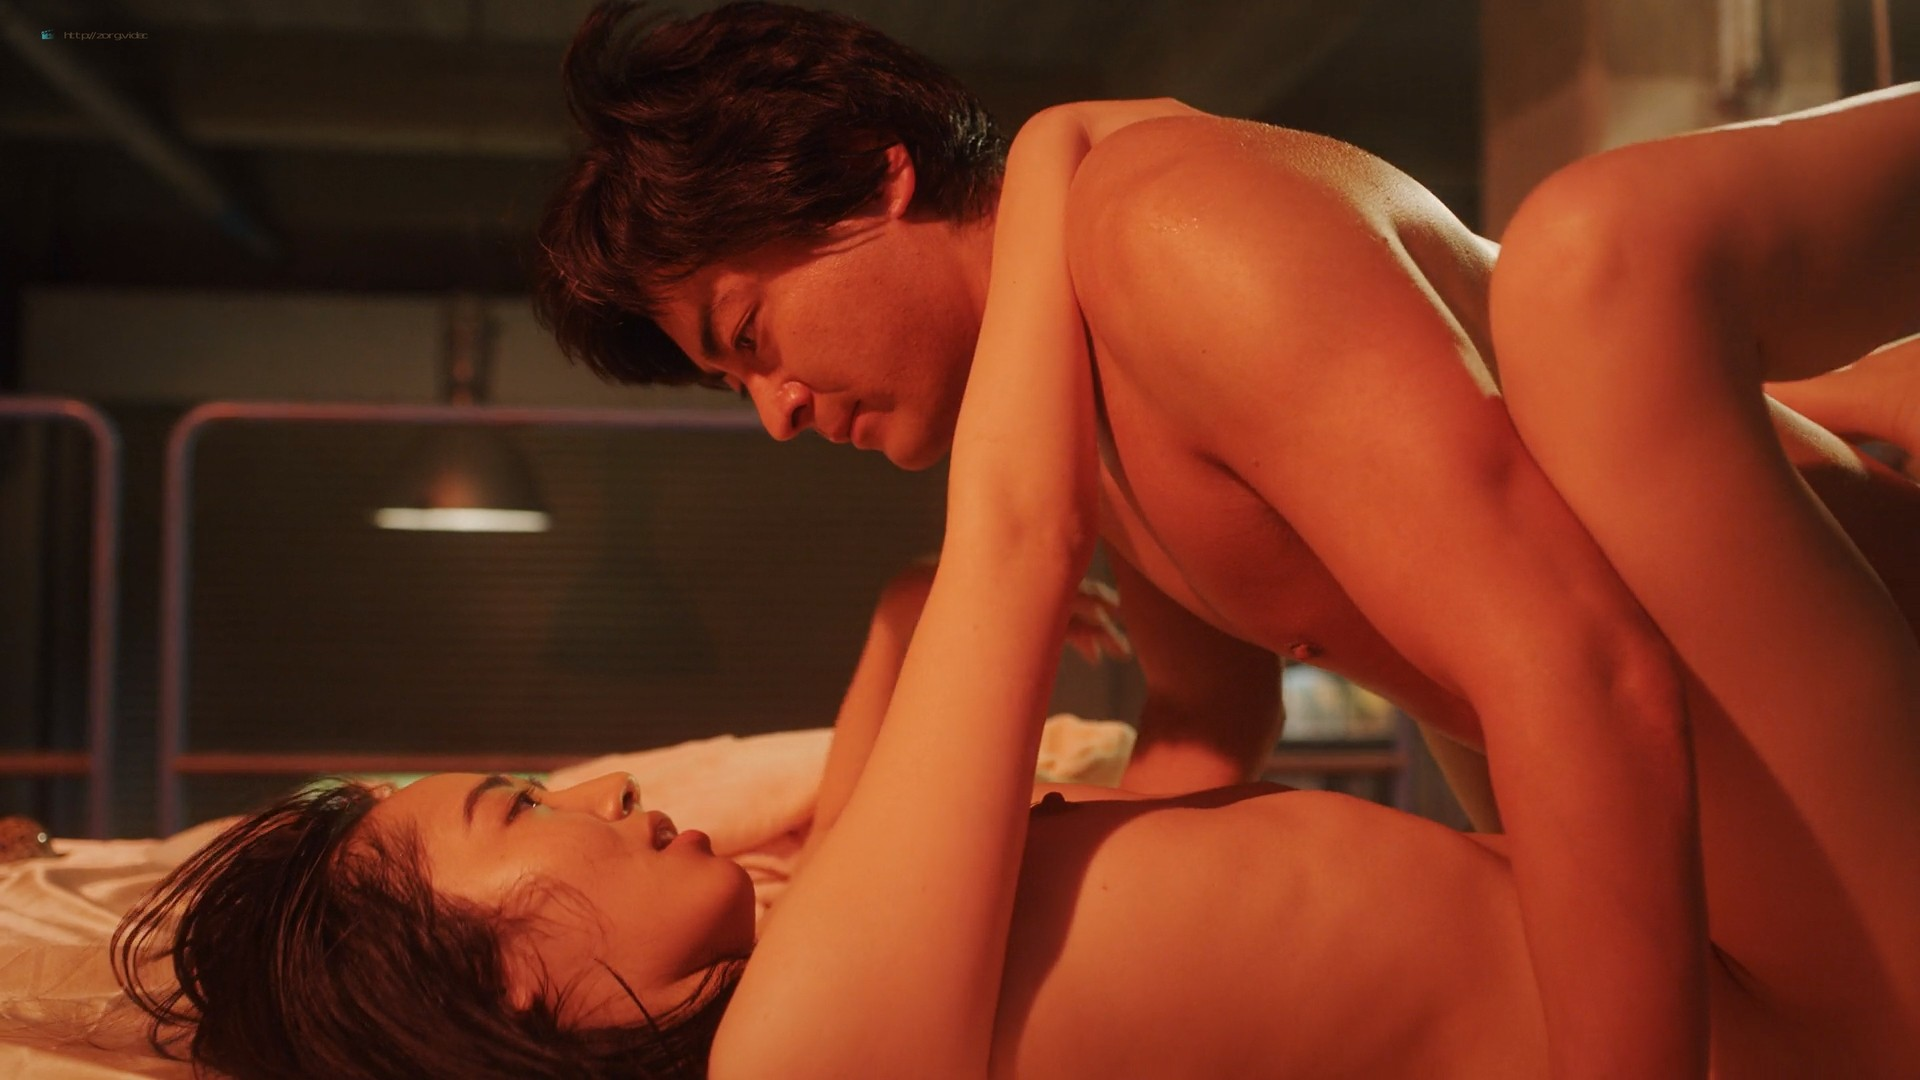 Misato Morita nude and lot of sex - The Naked Director (2019) s1e5 HD 1080p Web (2)